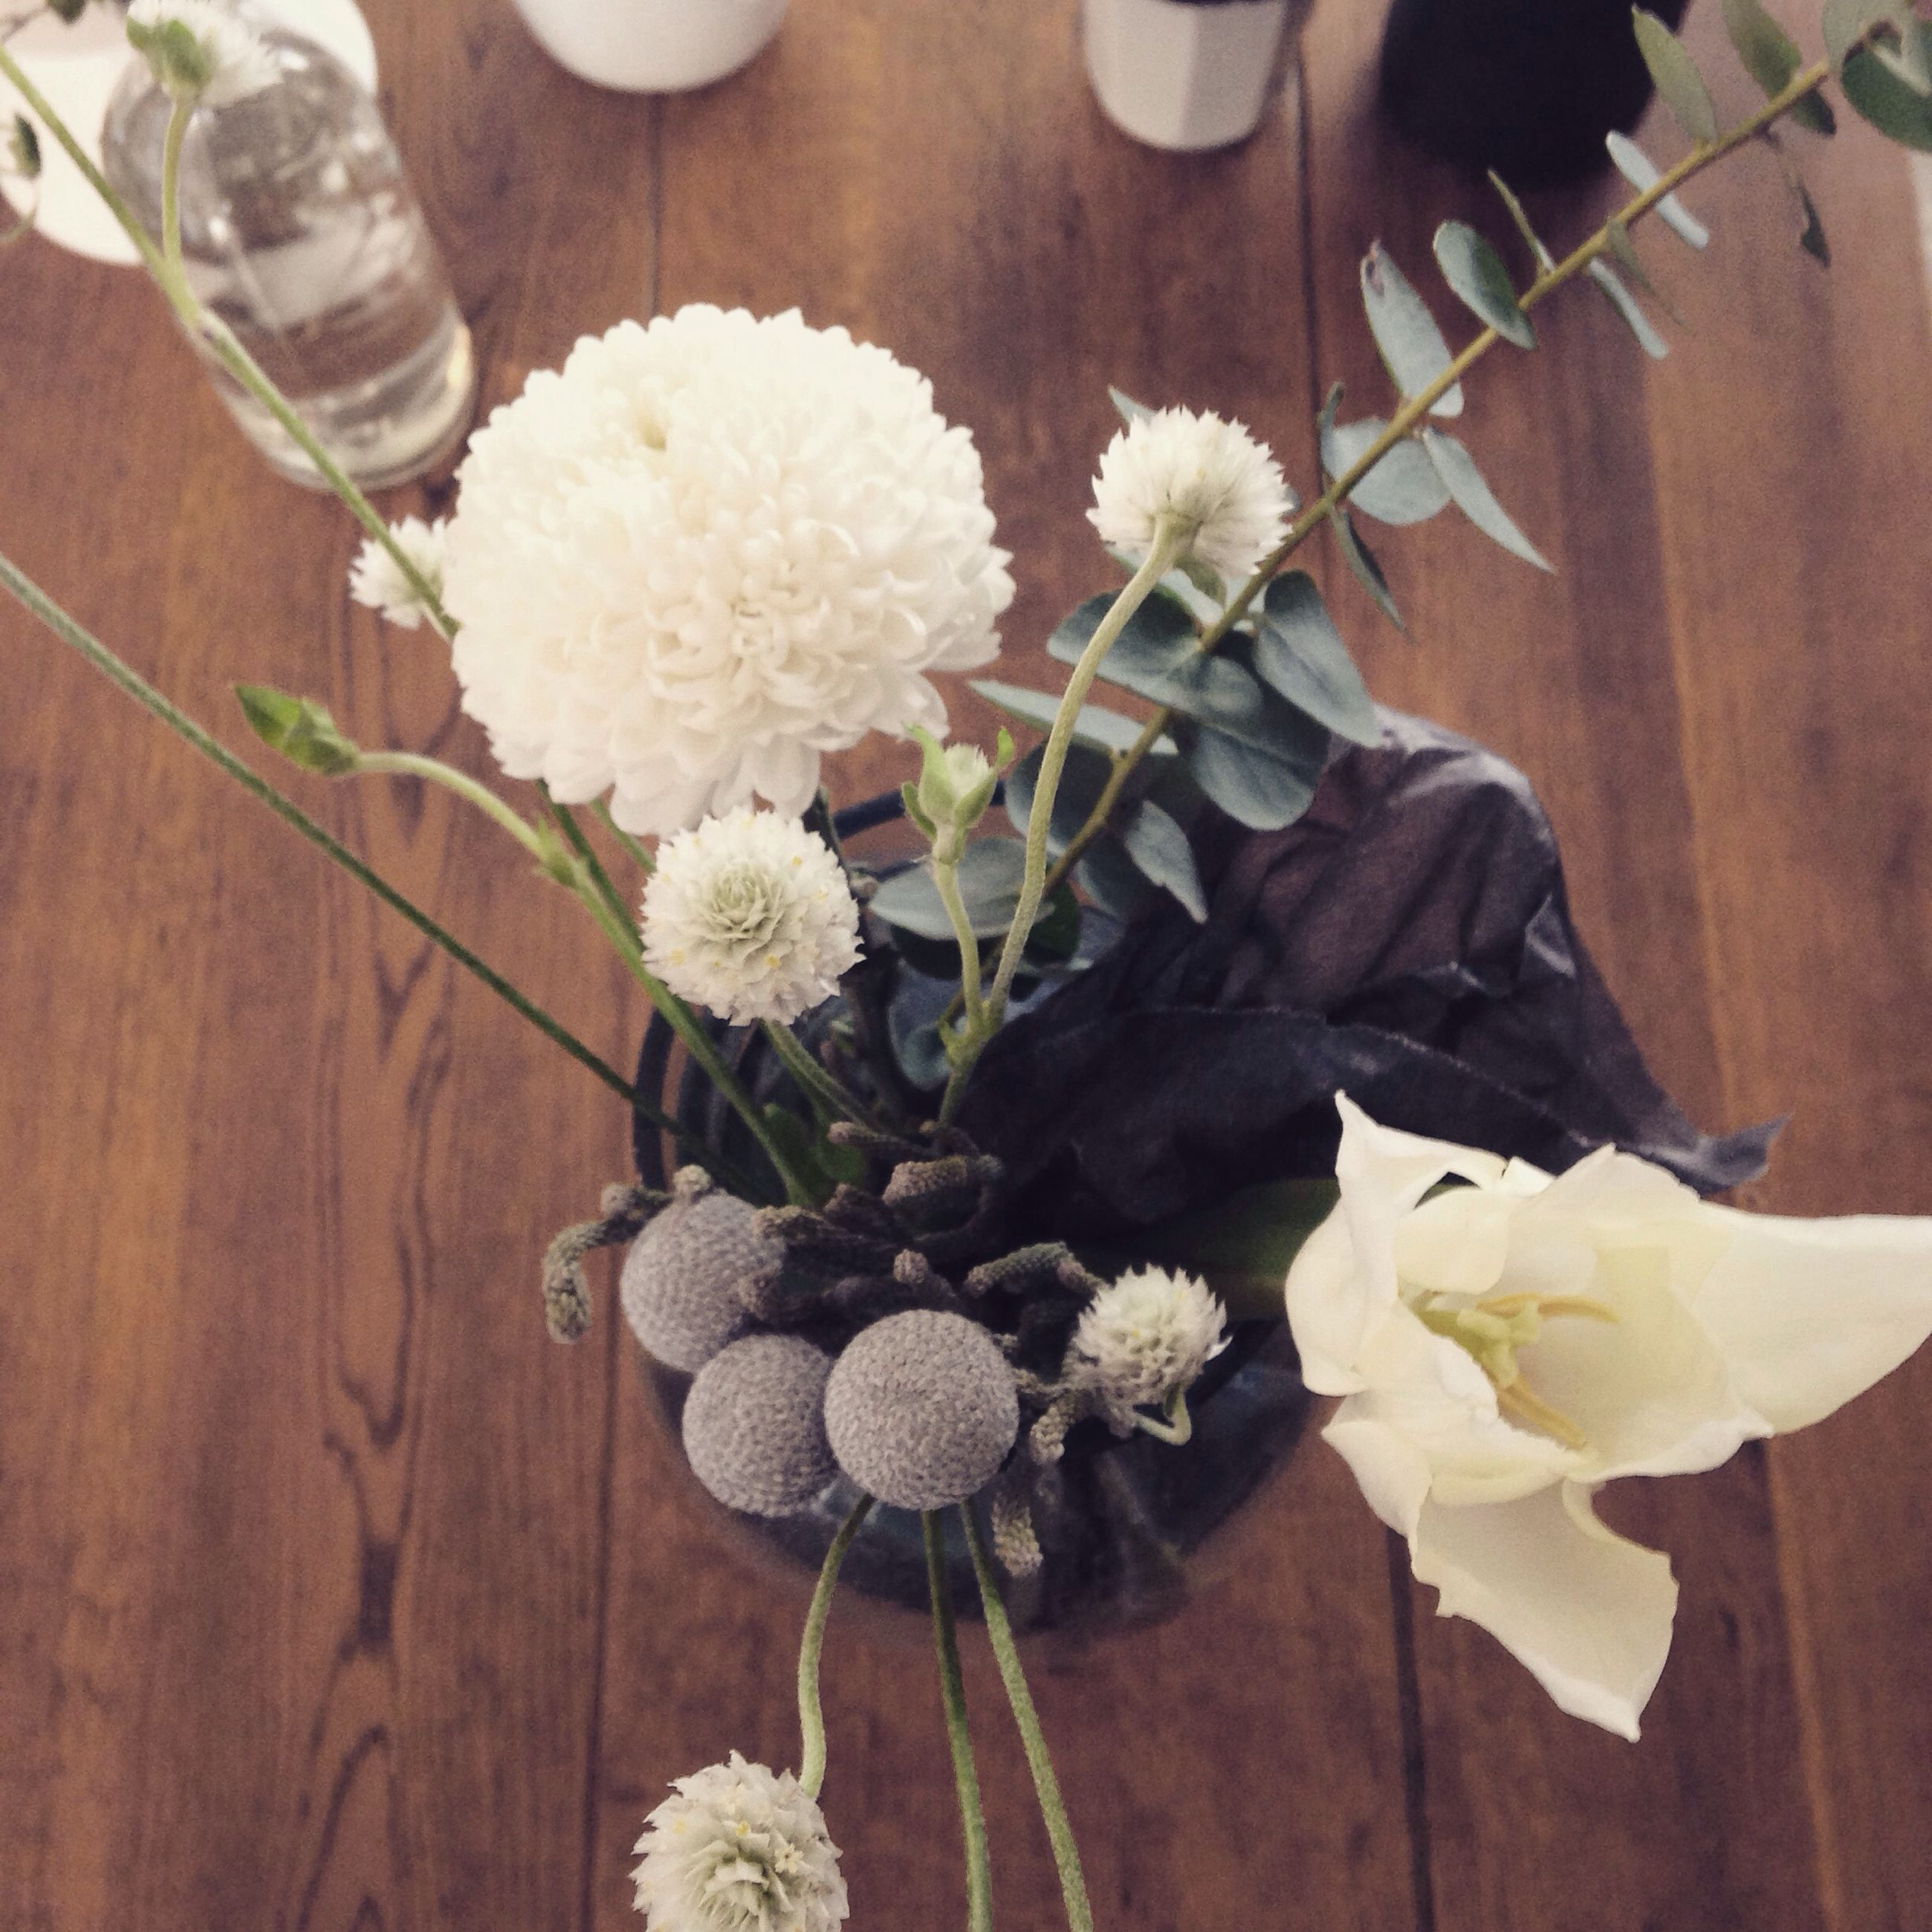 flower, petal, freshness, fragility, flower head, vase, indoors, high angle view, bouquet, bunch of flowers, beauty in nature, flower arrangement, blooming, plant, rose - flower, white color, nature, growth, decoration, table